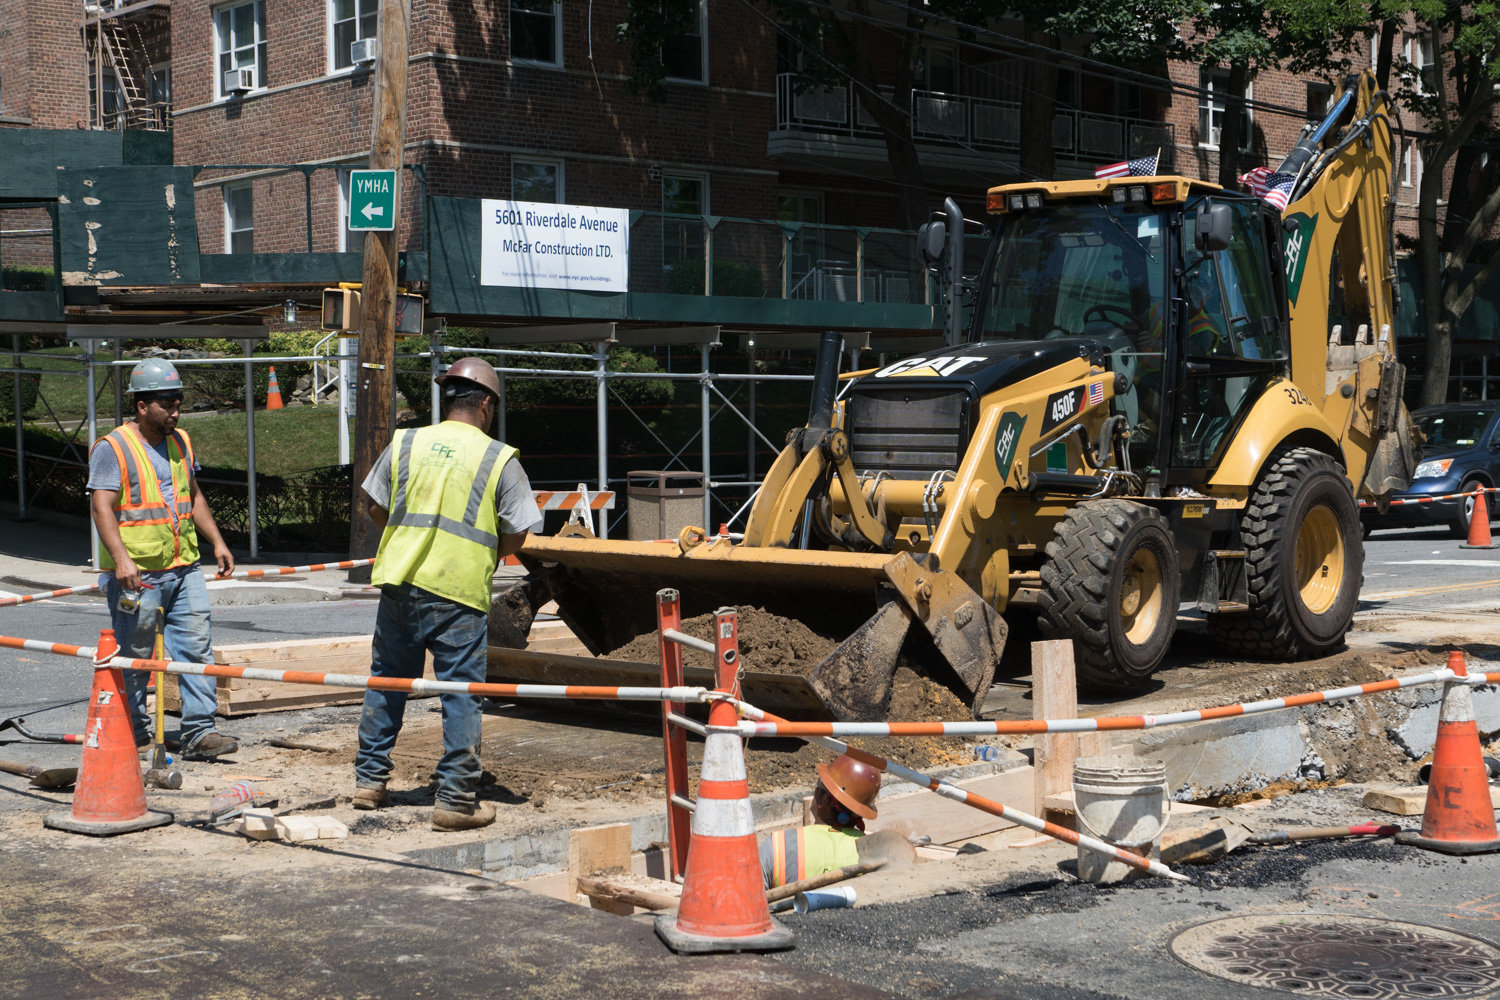 Where there's a street, there's probably going to be roadwork, like the kind seen in North Riverdale over the past year. The city's design and construction department is set to being replacing water mains on the western side of Jerome Park Reservoir beginning in mid-January.